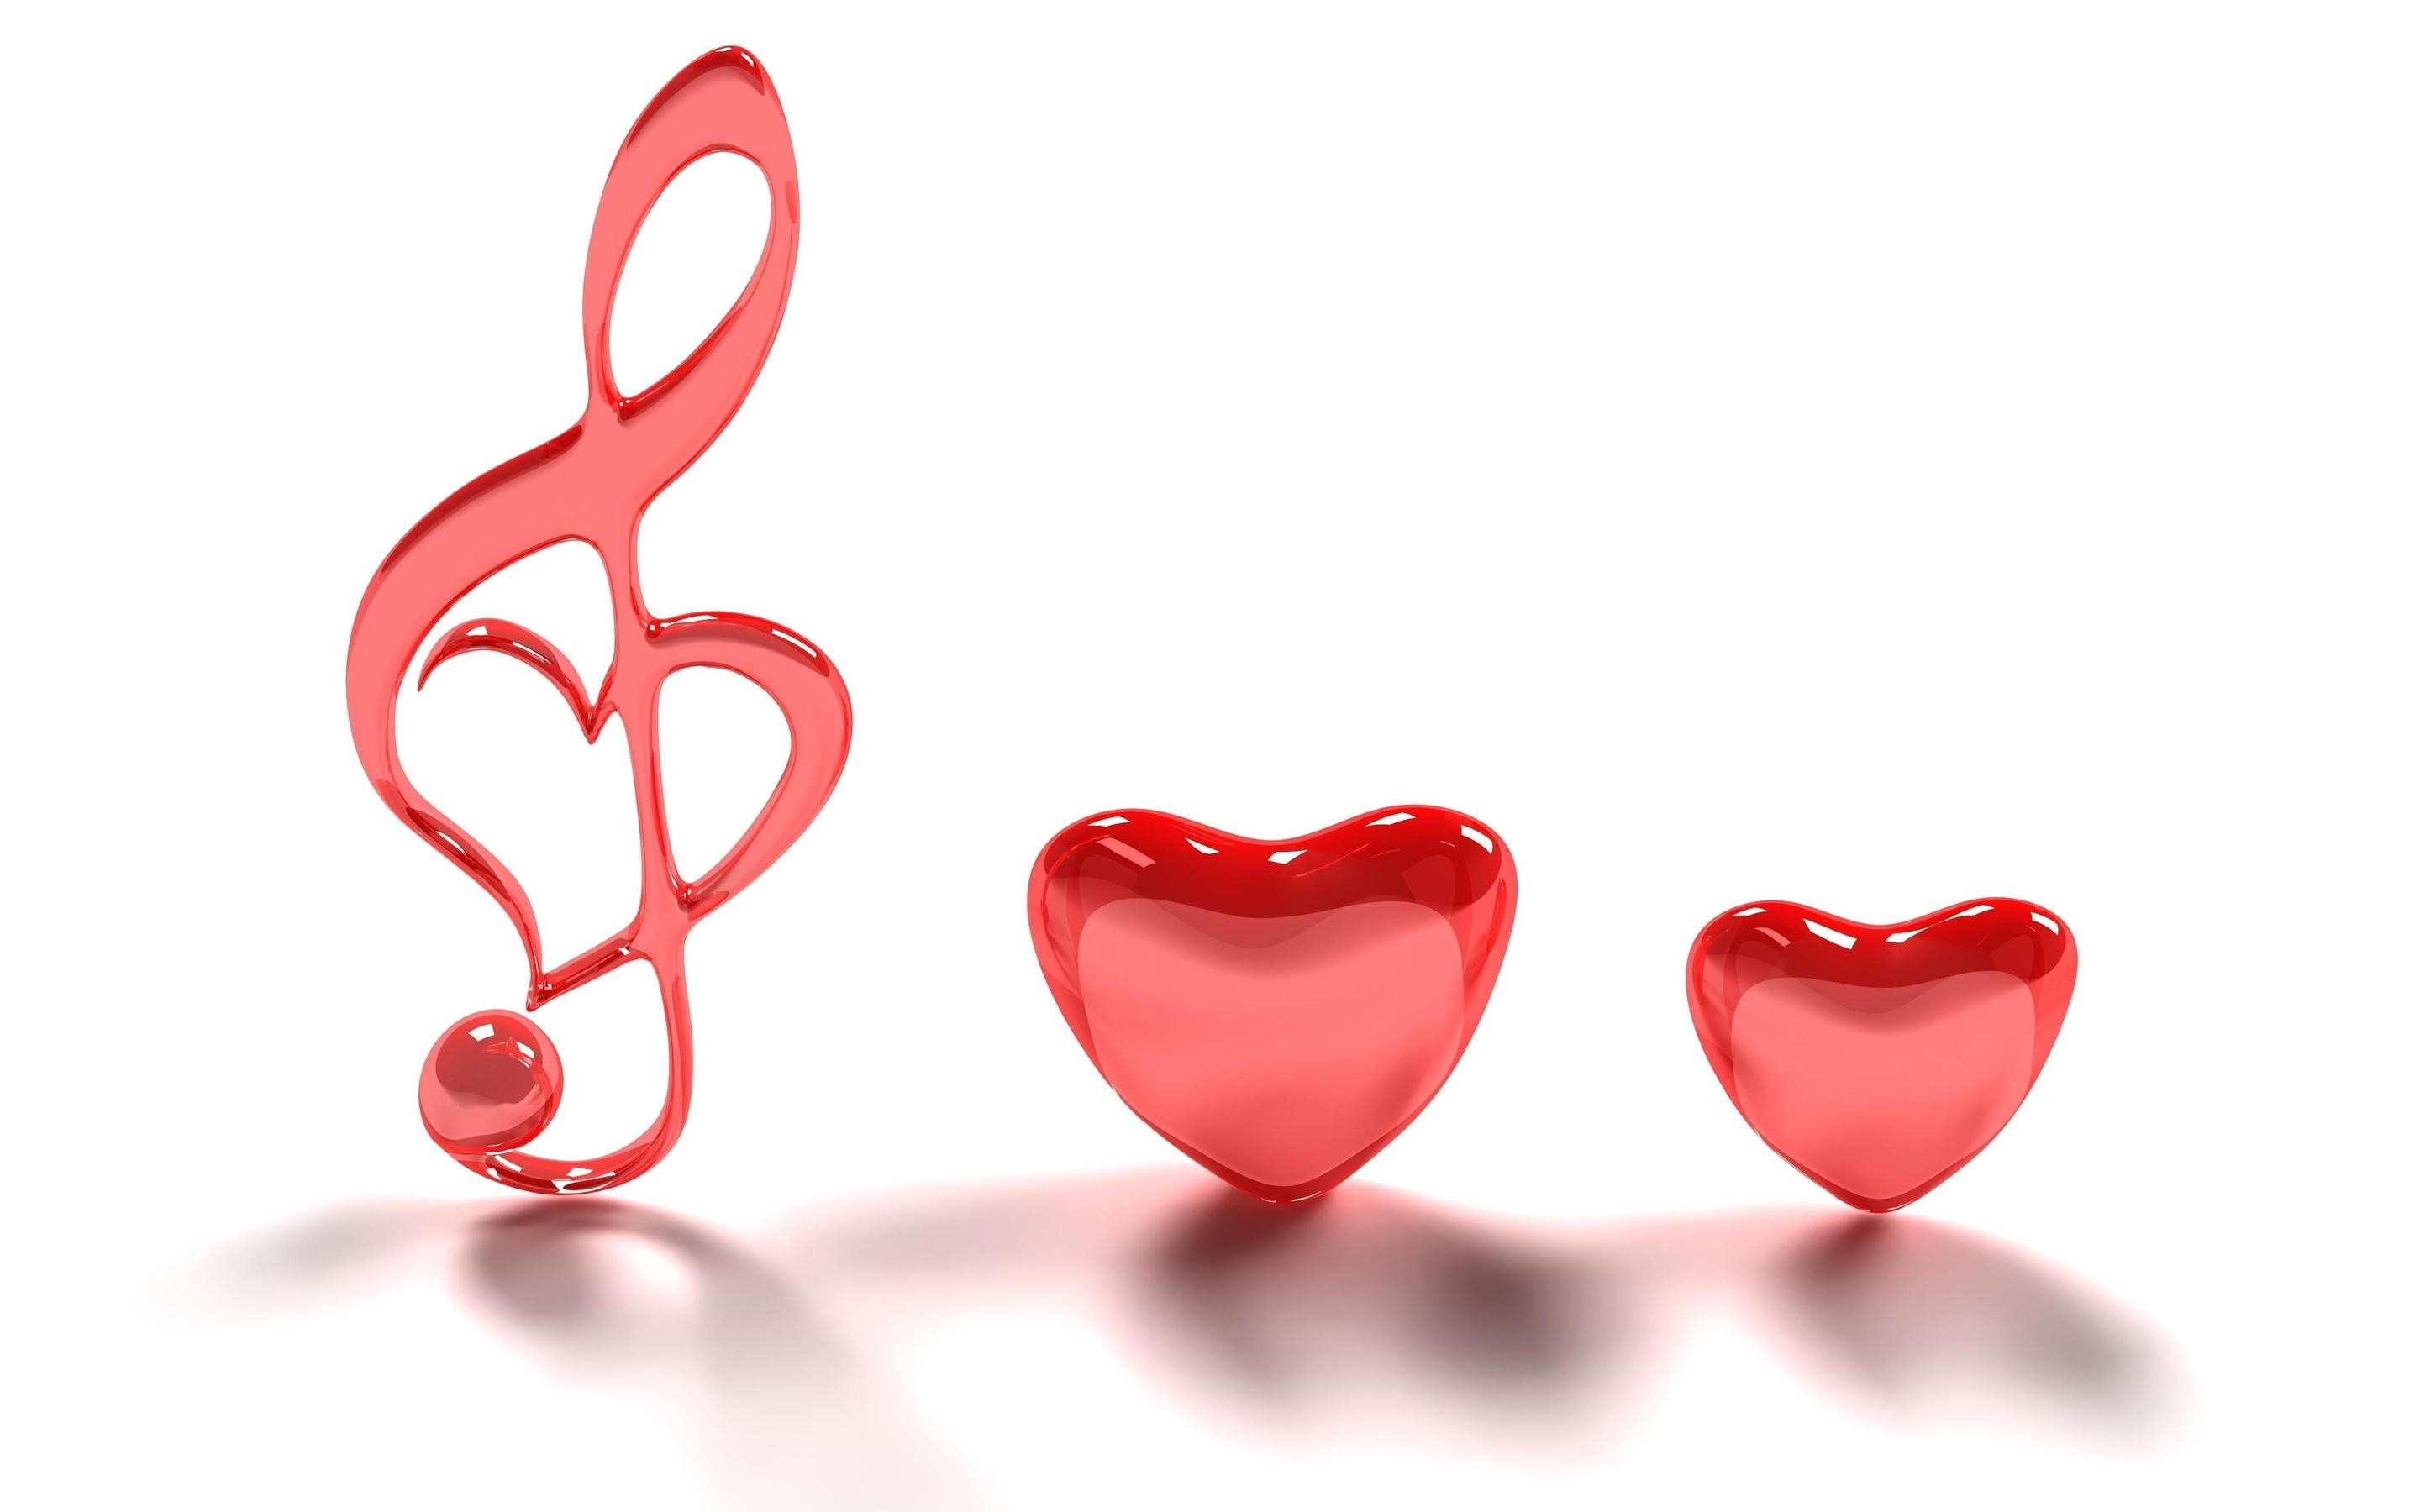 Cute Red Love Heart Wallpaper | Live HD Wallpaper HQ Pictures, Images .